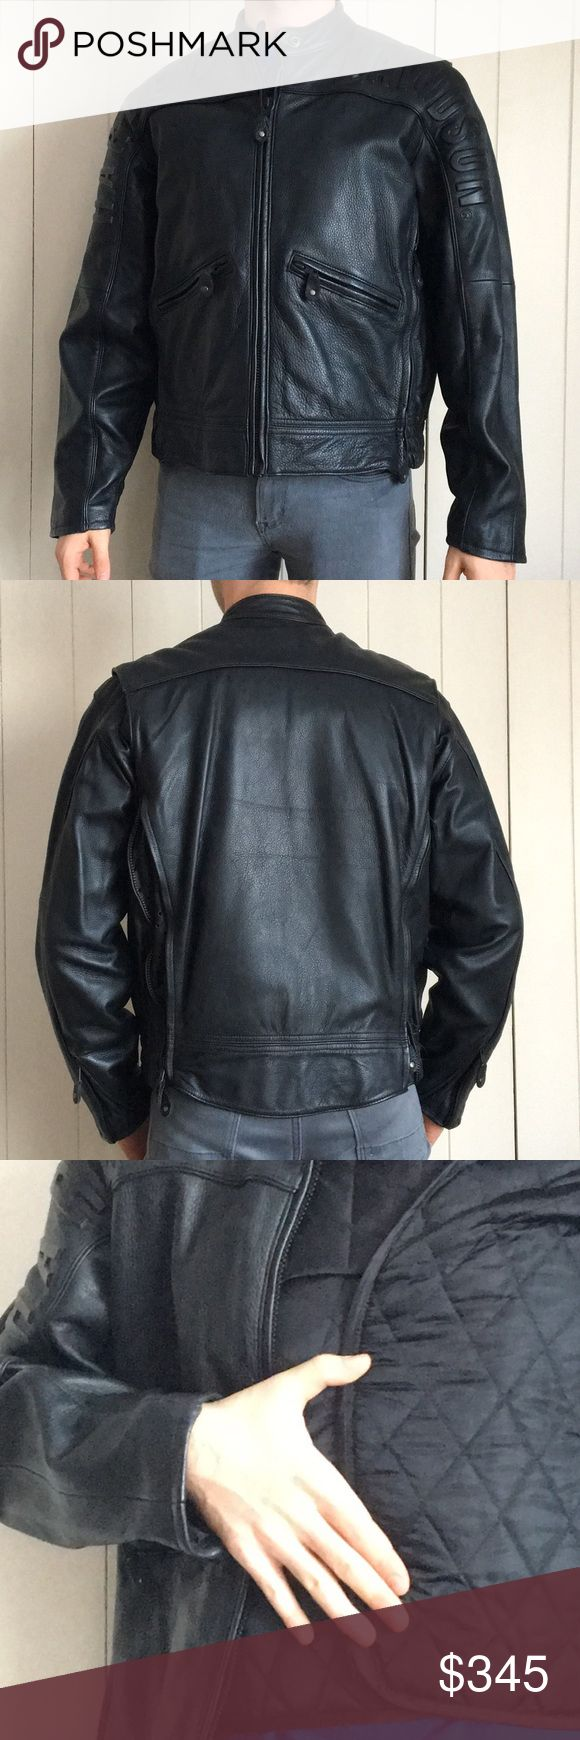 Harley Davidson leather jacket Authentic Harley leather jacket. Interior vest liner for warmth. 4 zippered extension panels (2 under each arm). Plenty of interior and exterior pockets. Perfect condition, never worn. Smoke free/pet free environment. Purchased directly from Harley. Harley-Davidson Jackets & Coats